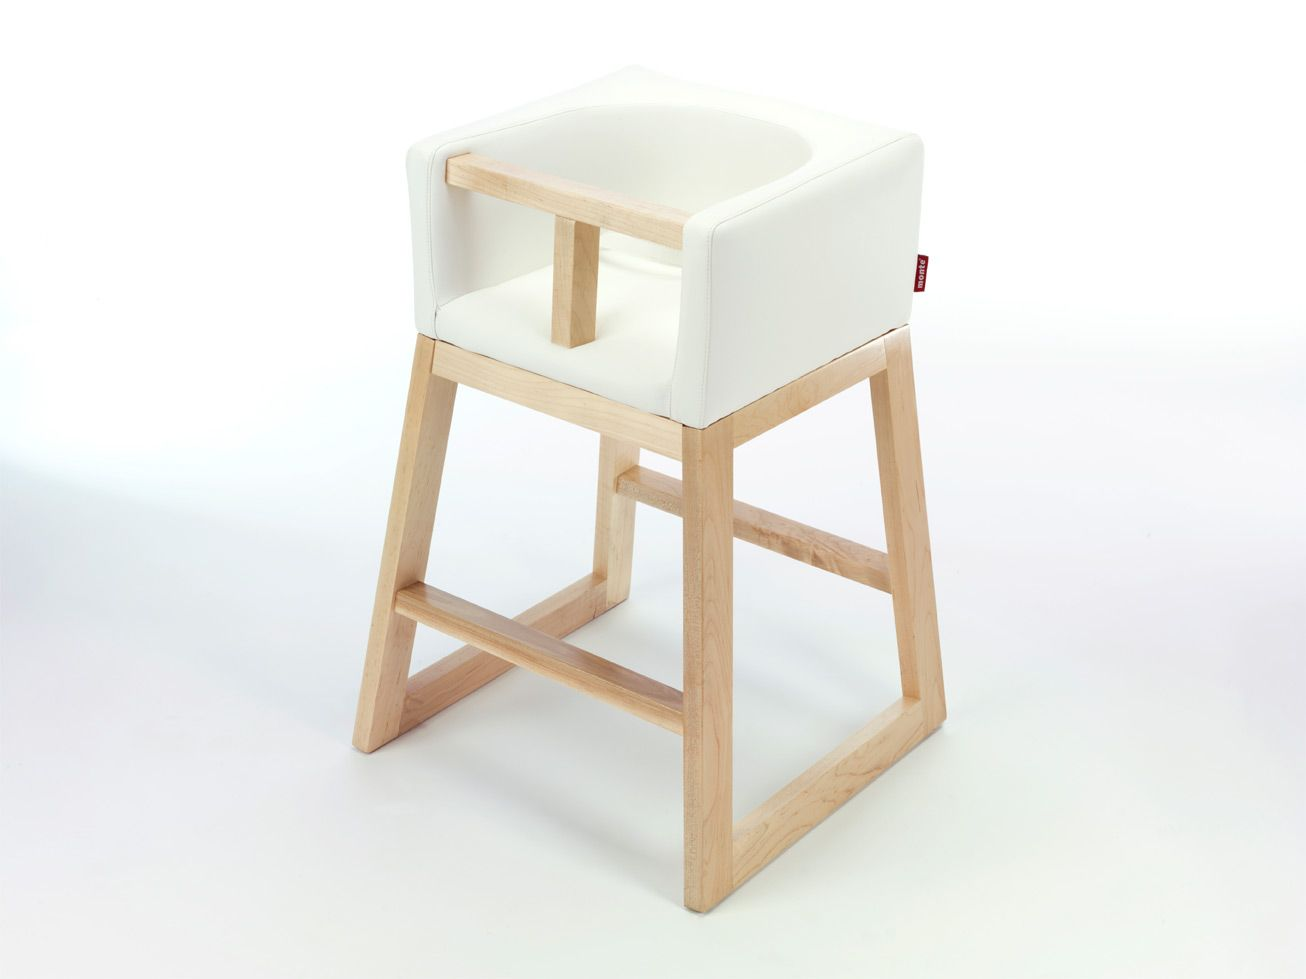 Tavo High Chair  Office chairs for sale, Modern nursery furniture